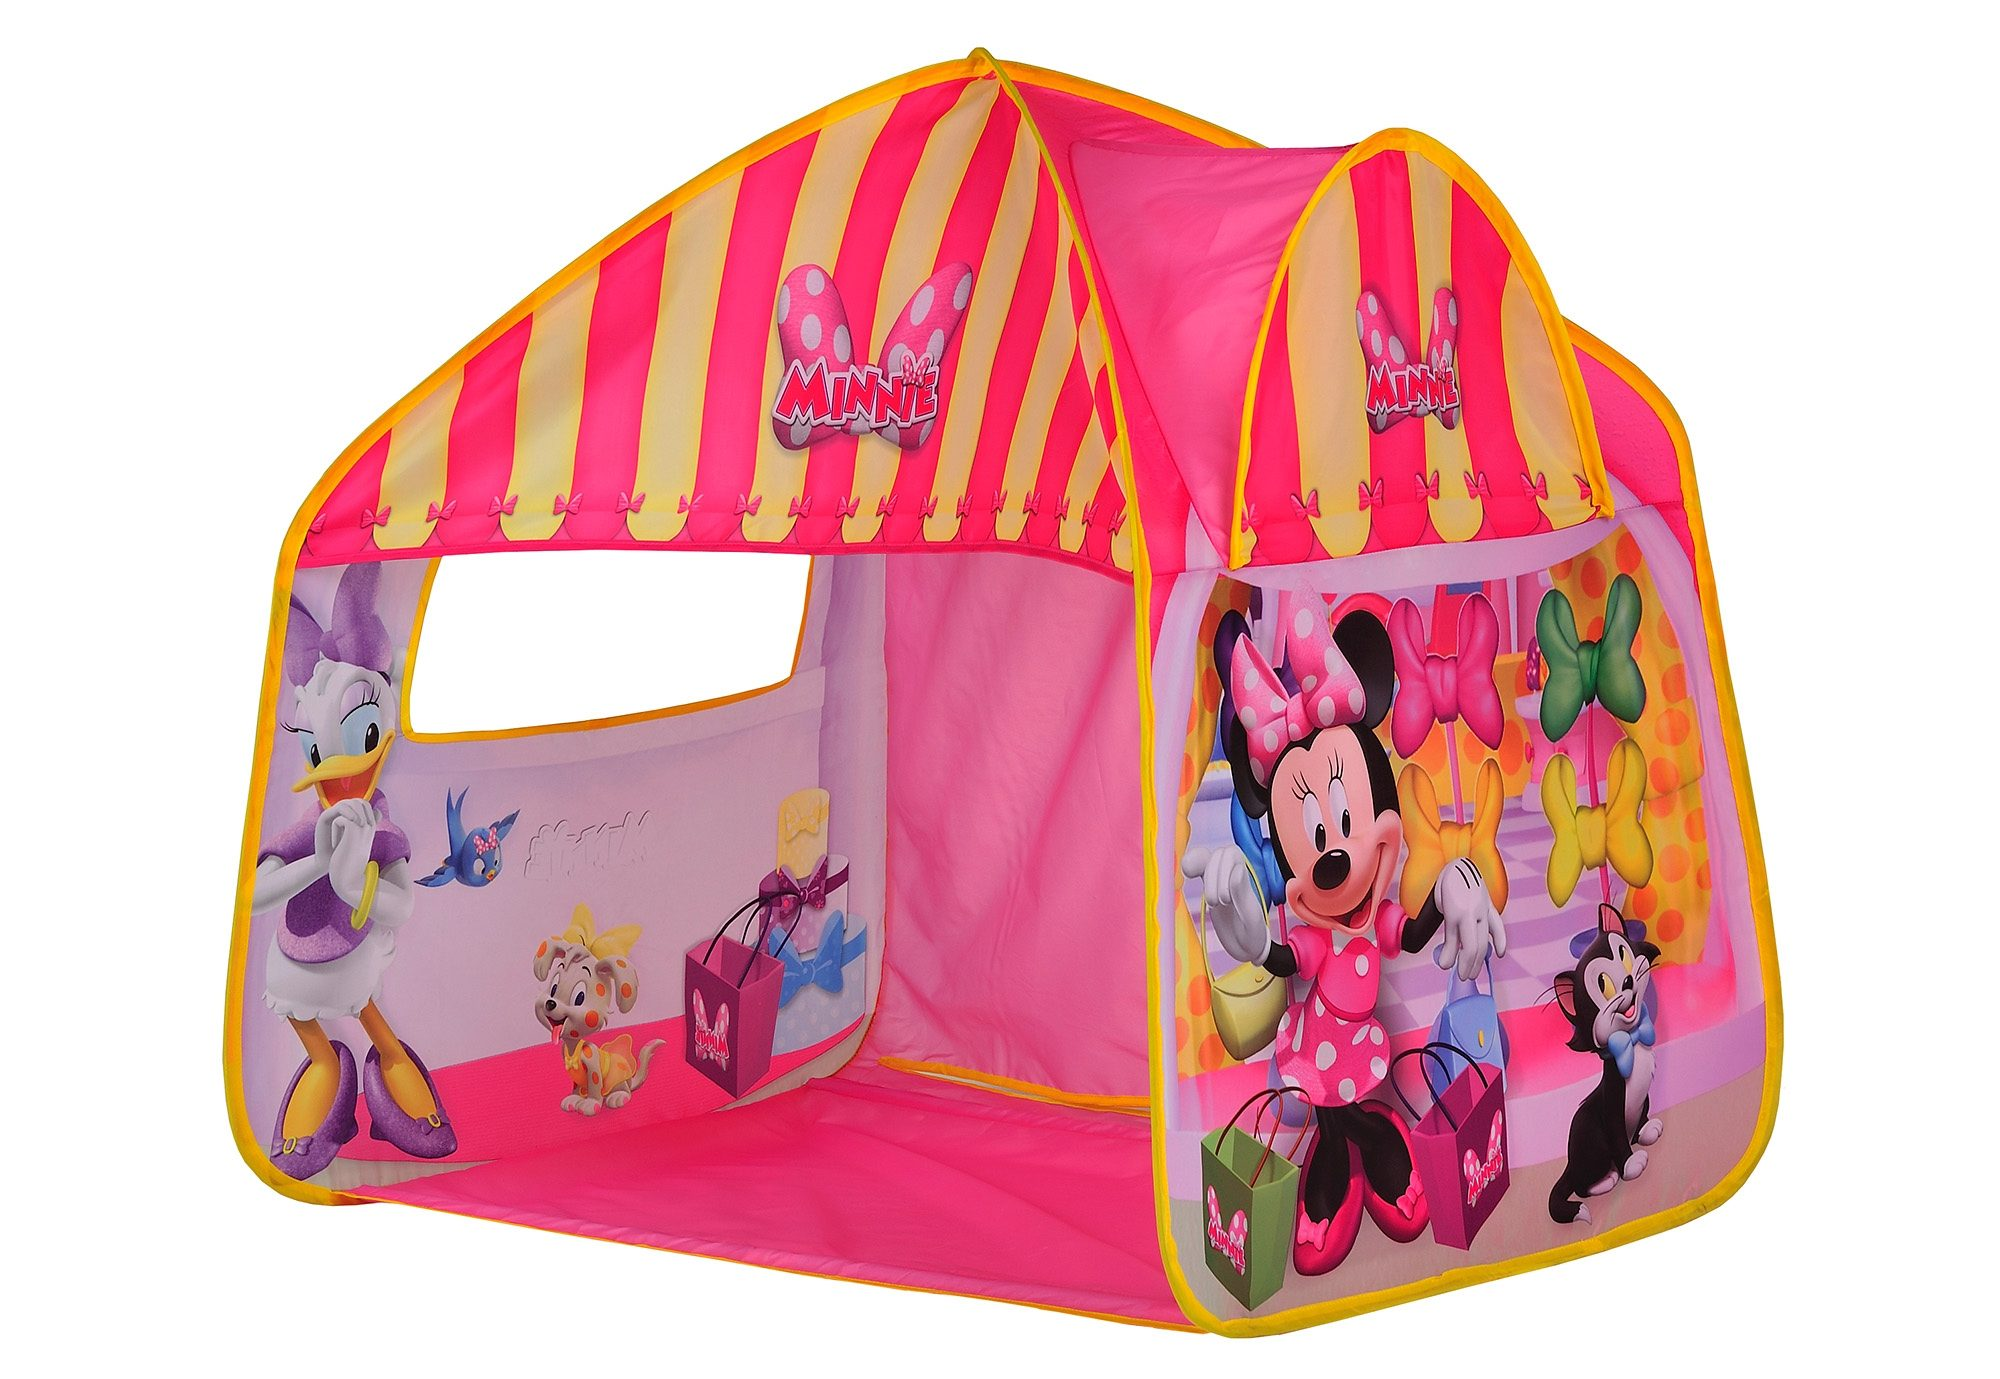 Spielzelt, »Minnie Mouse«, knorr toys